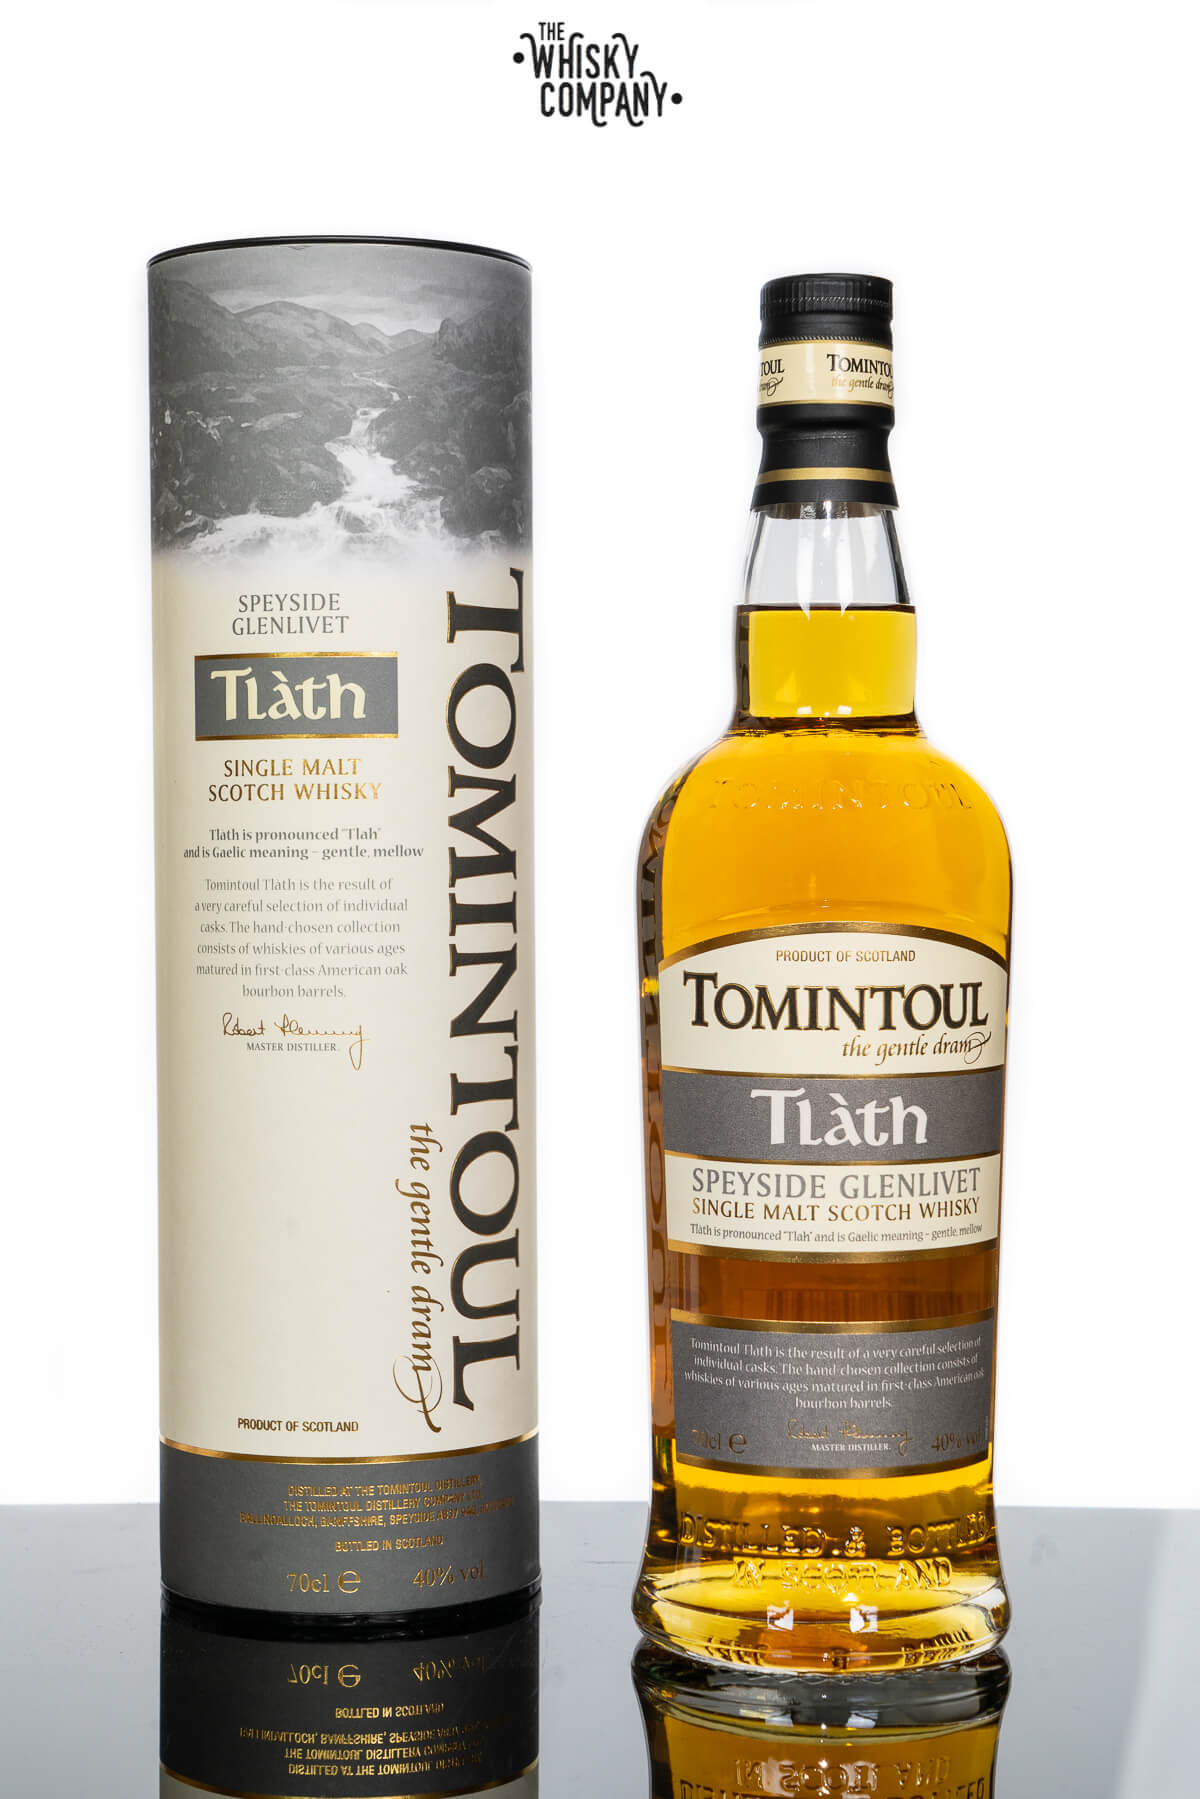 Tomintoul Tlath Speyside Single Malt Scotch Whisky (700ml)